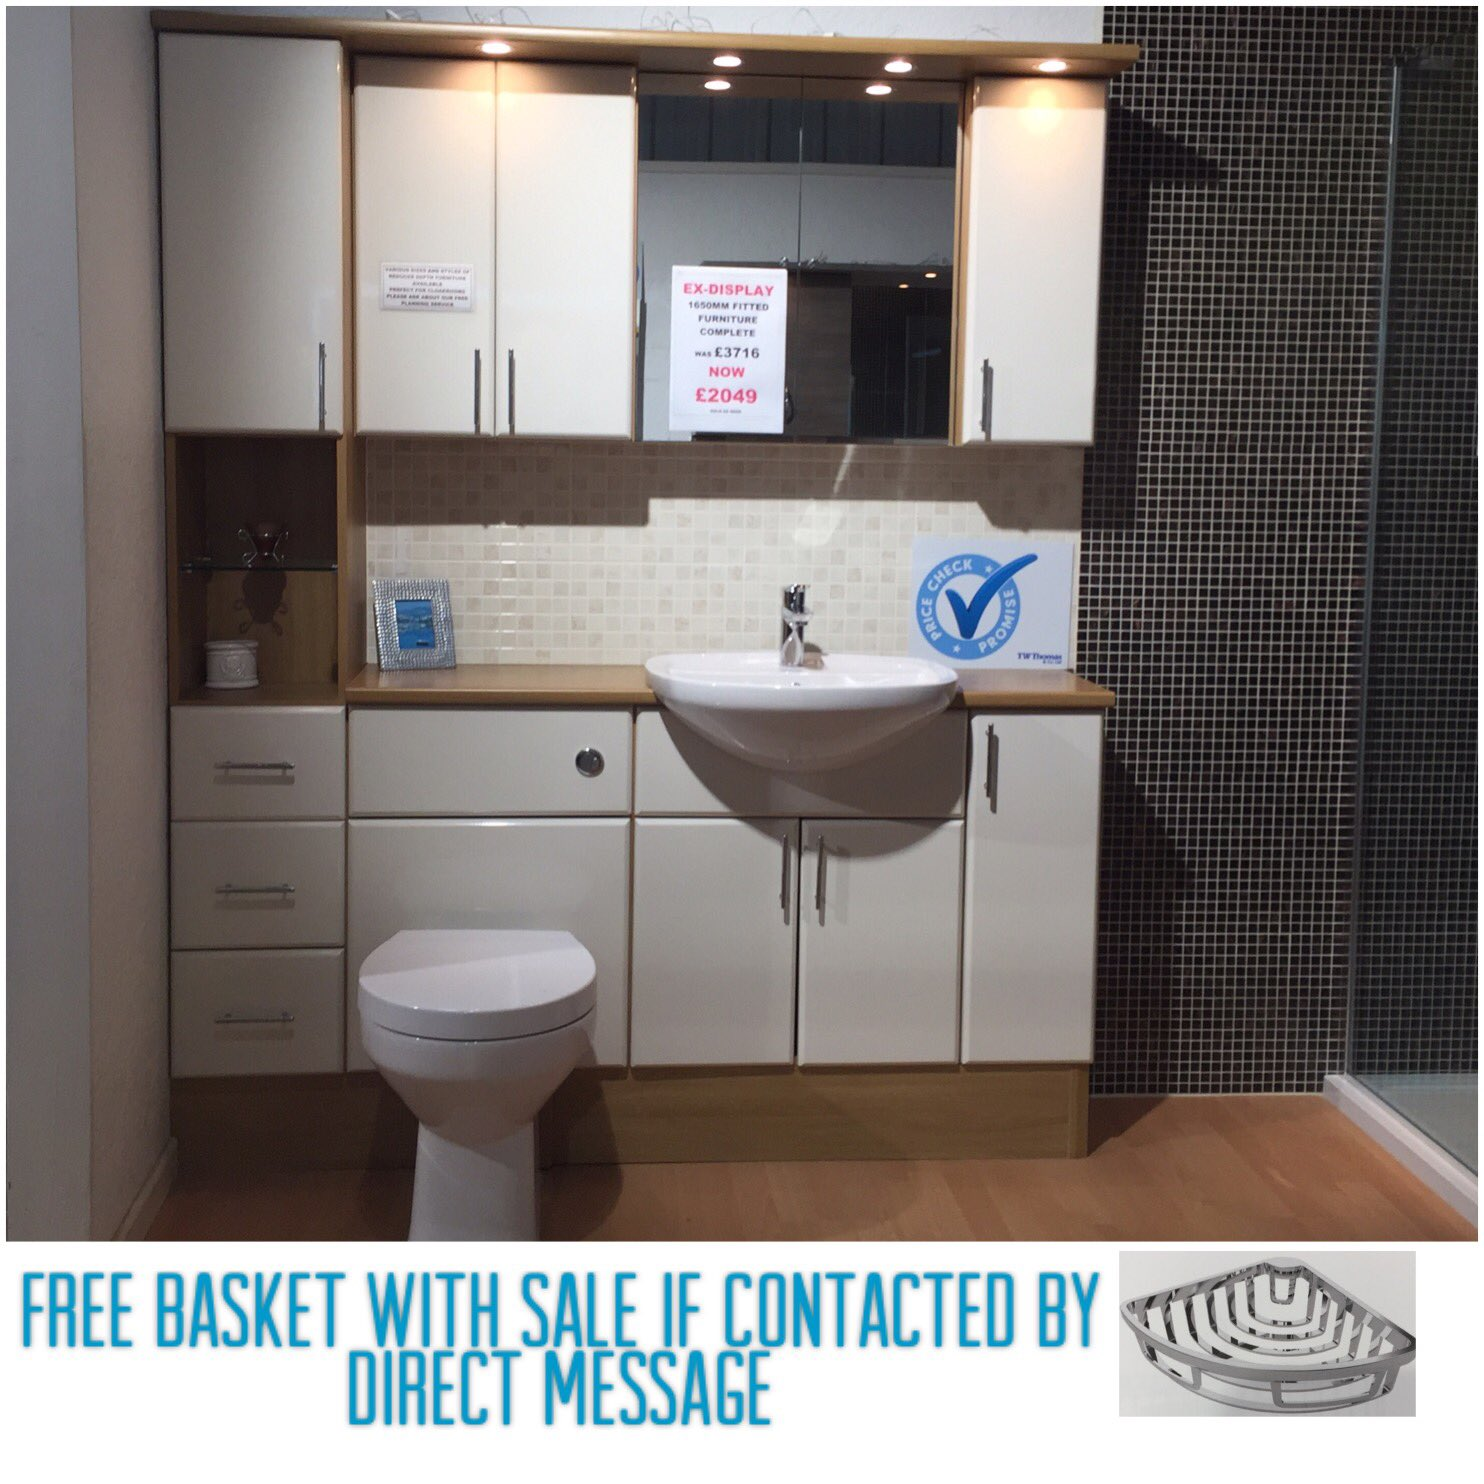 """TW THOMAS BATHROOMS on Twitter: """"First ex display offer - utopia"""